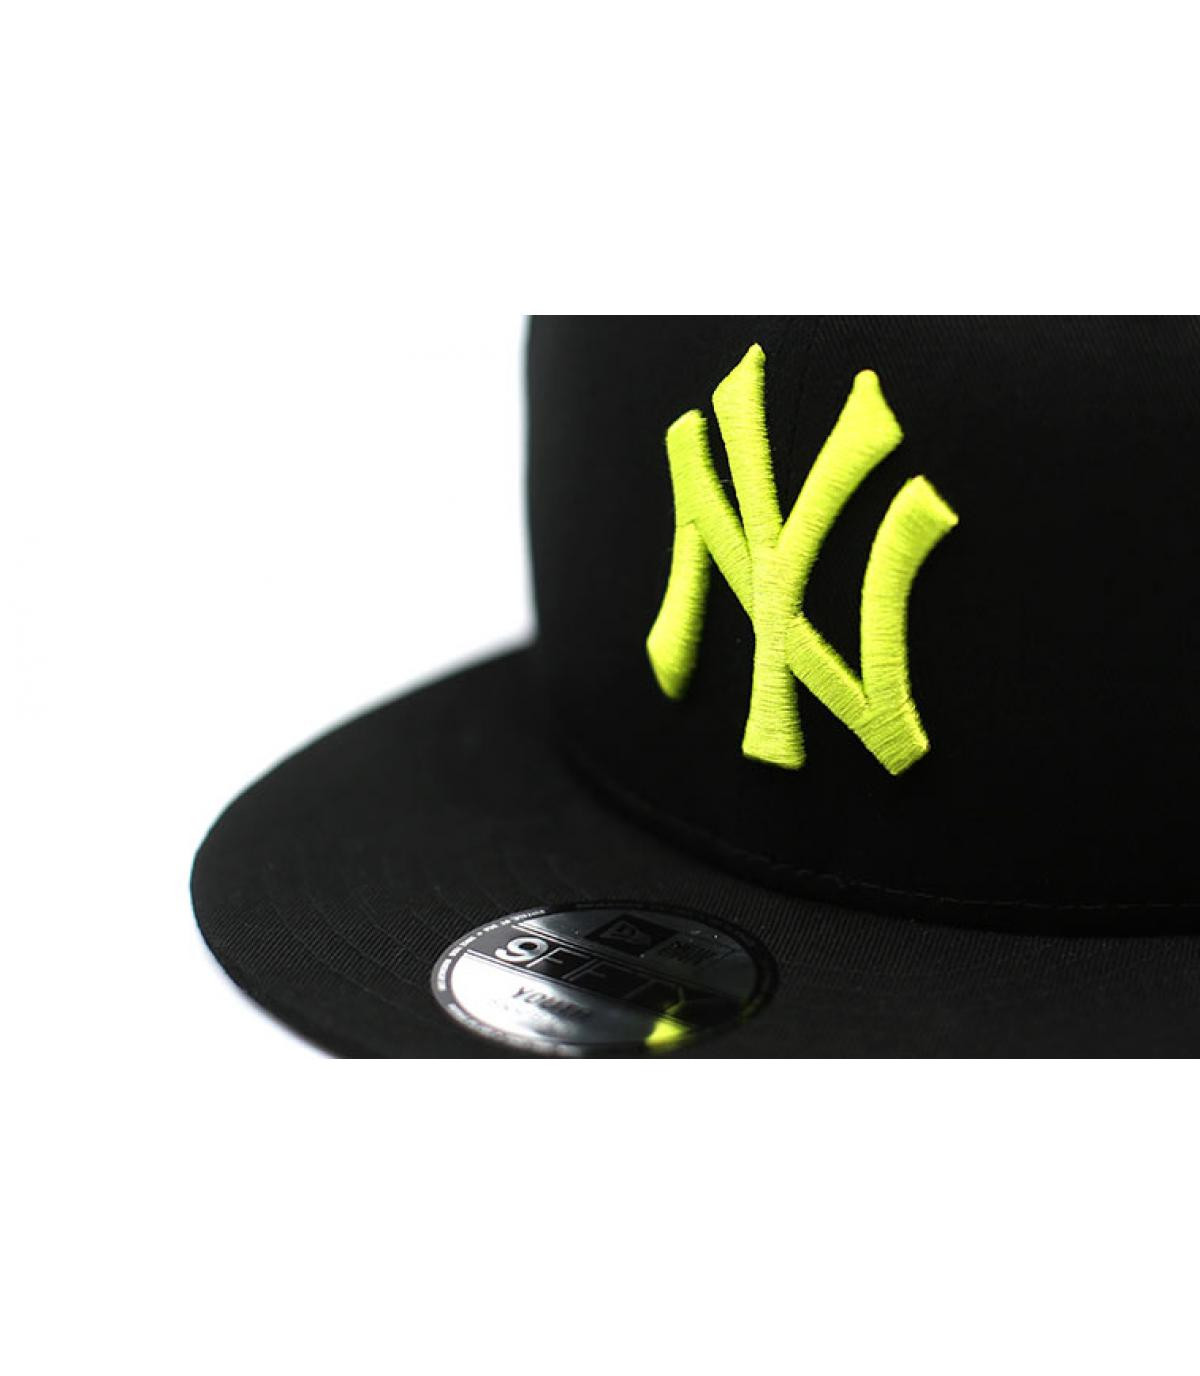 Détails Snapback Kids League Ess NY 9Fifty black cyber yellow - image 3